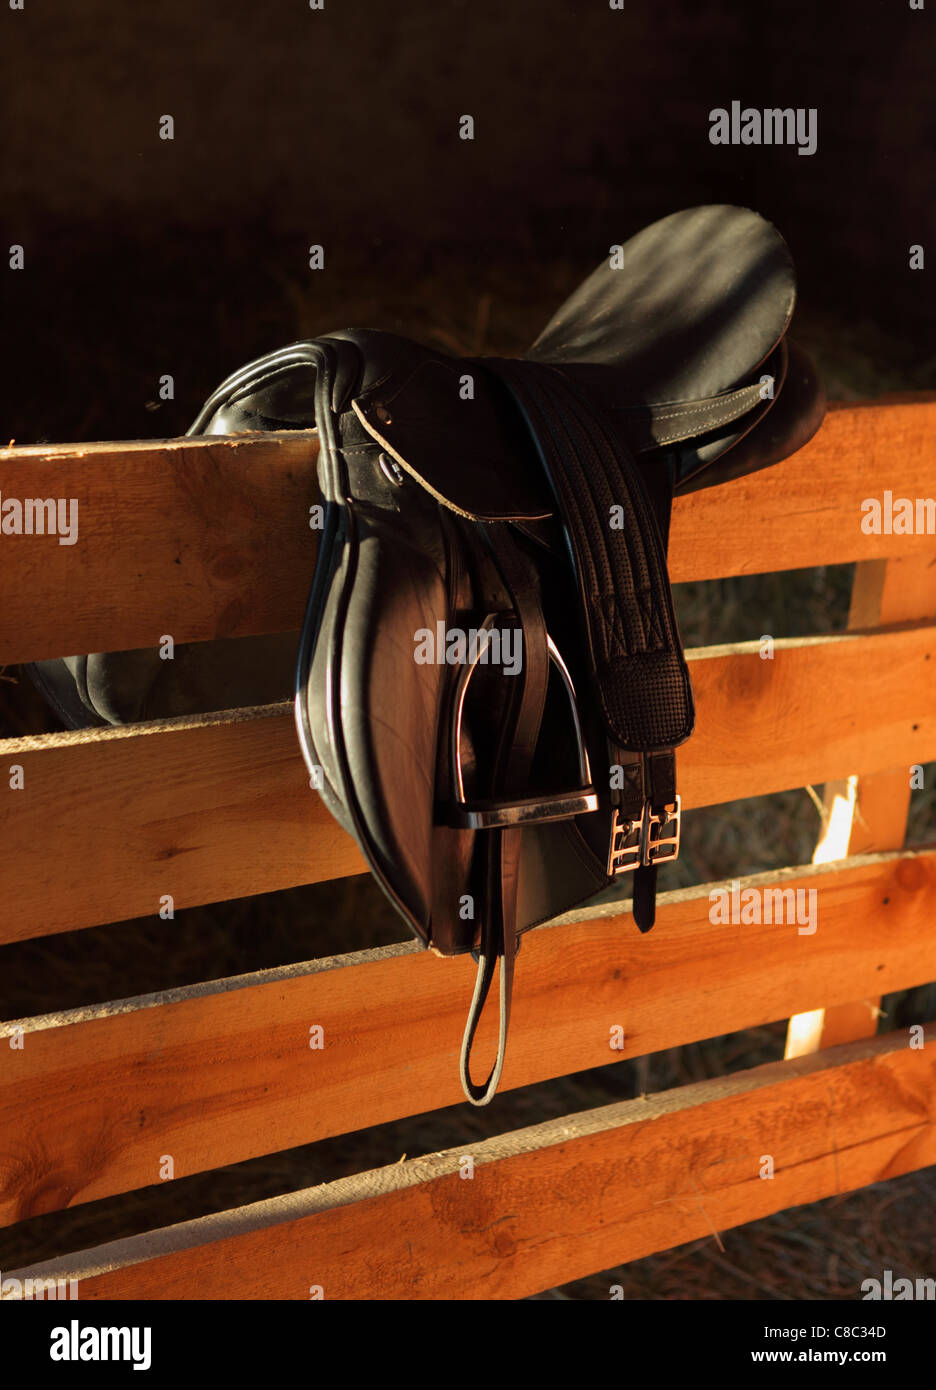 Old English Saddle - Stock Image